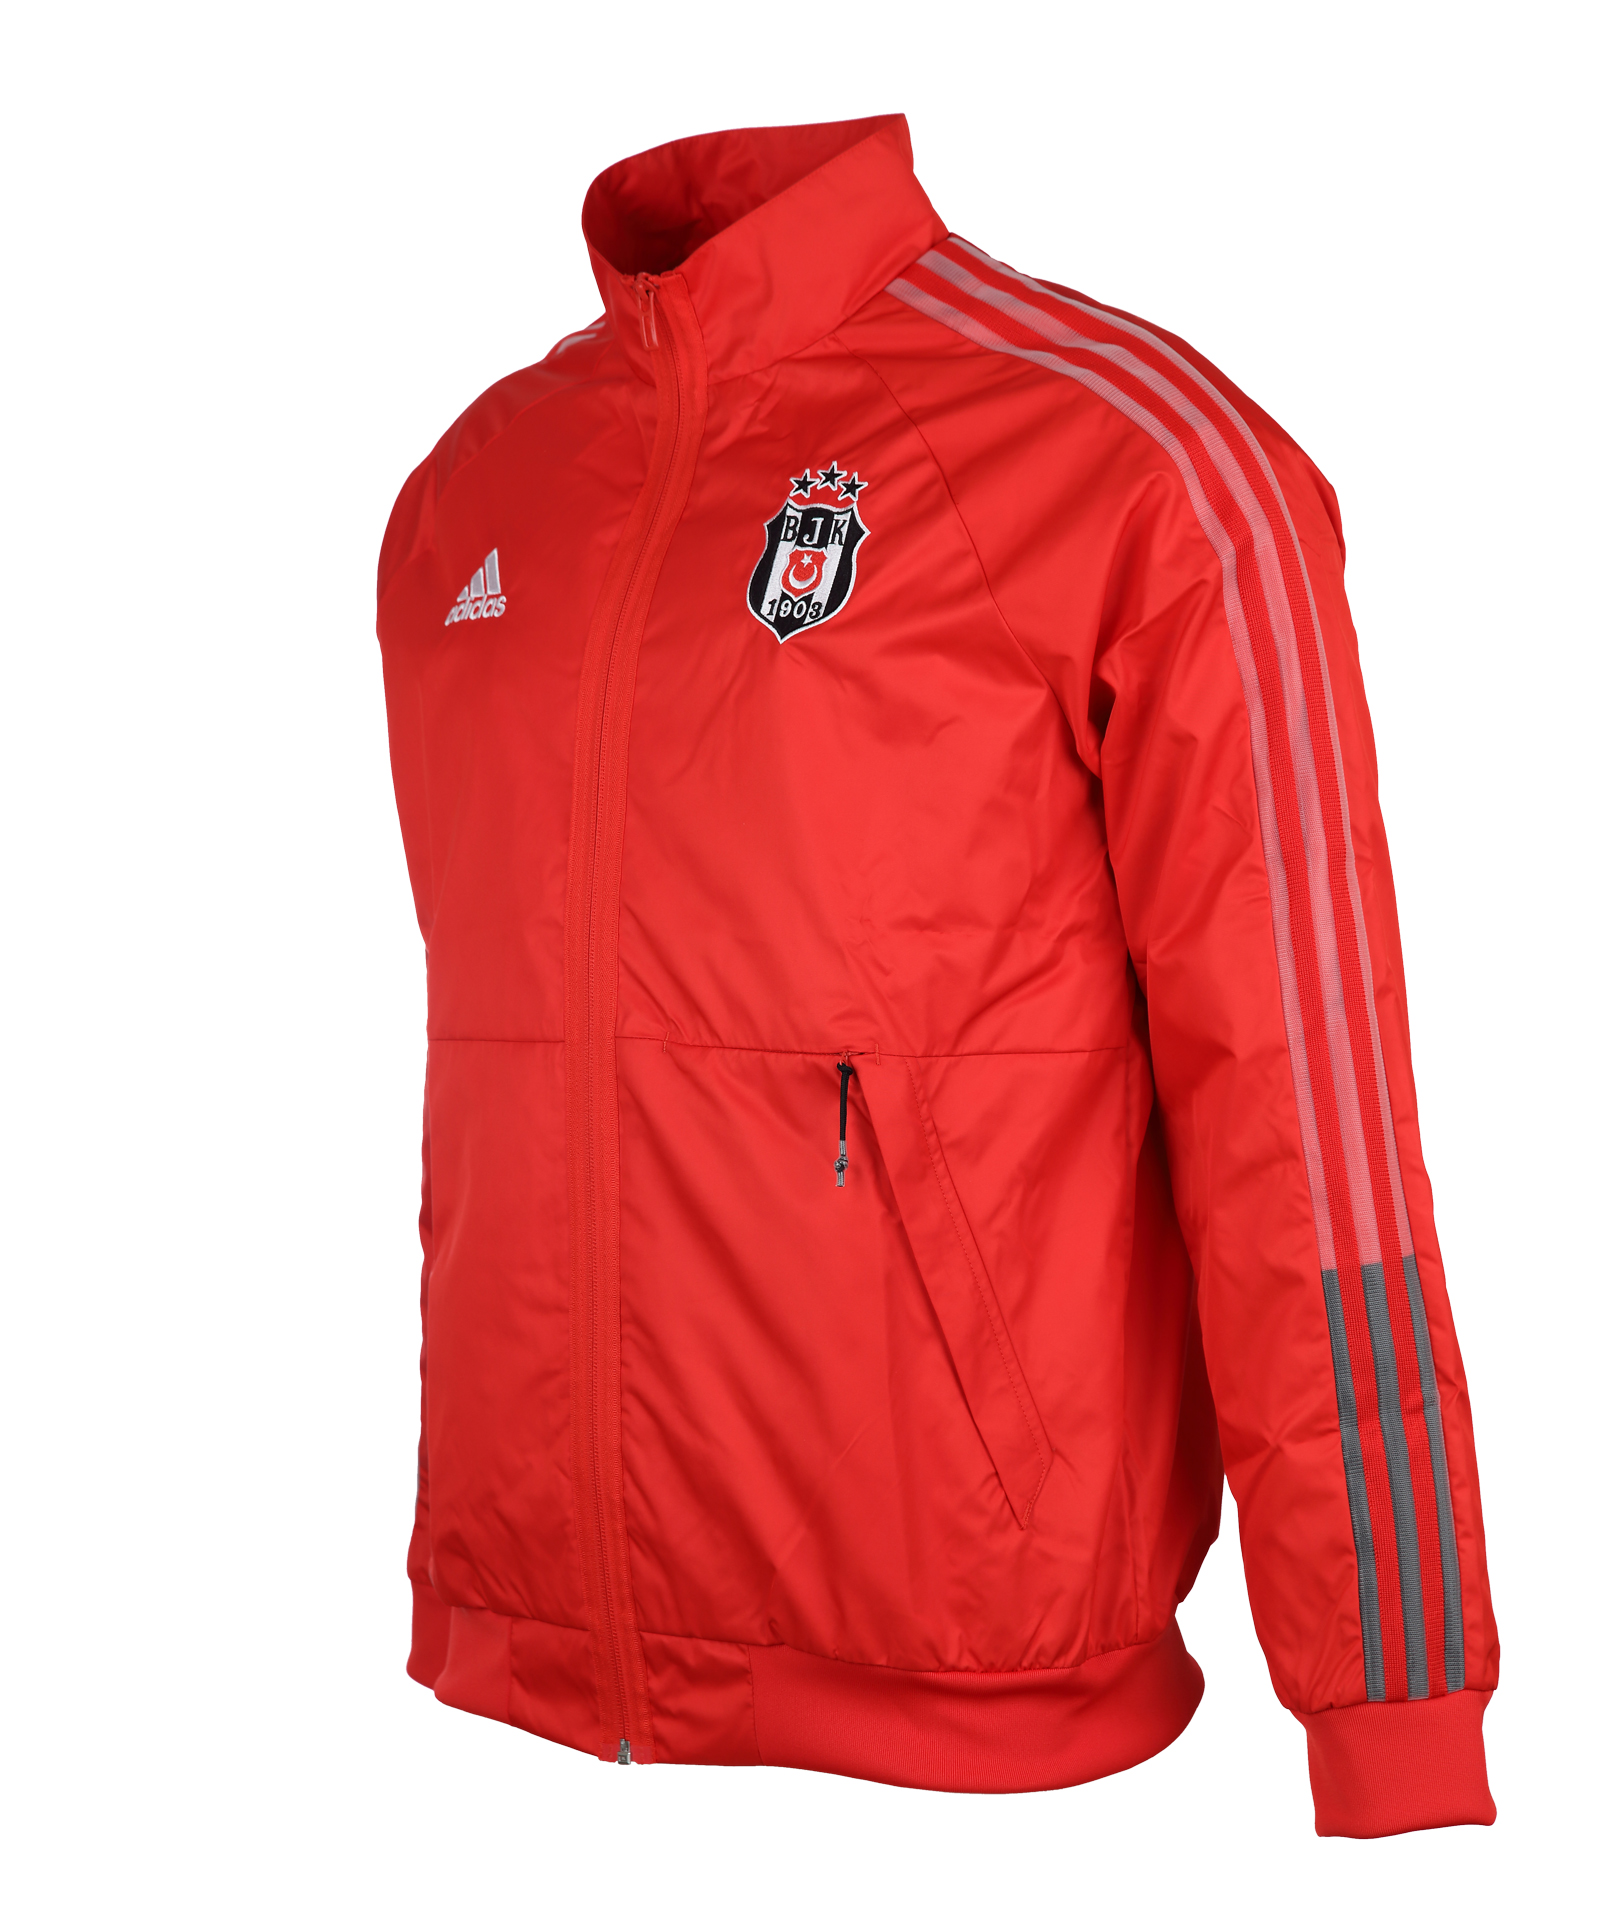 BJK X ADIDAS CULTURE COLLECTION ANTHEM JACKET 20-21 FR4107